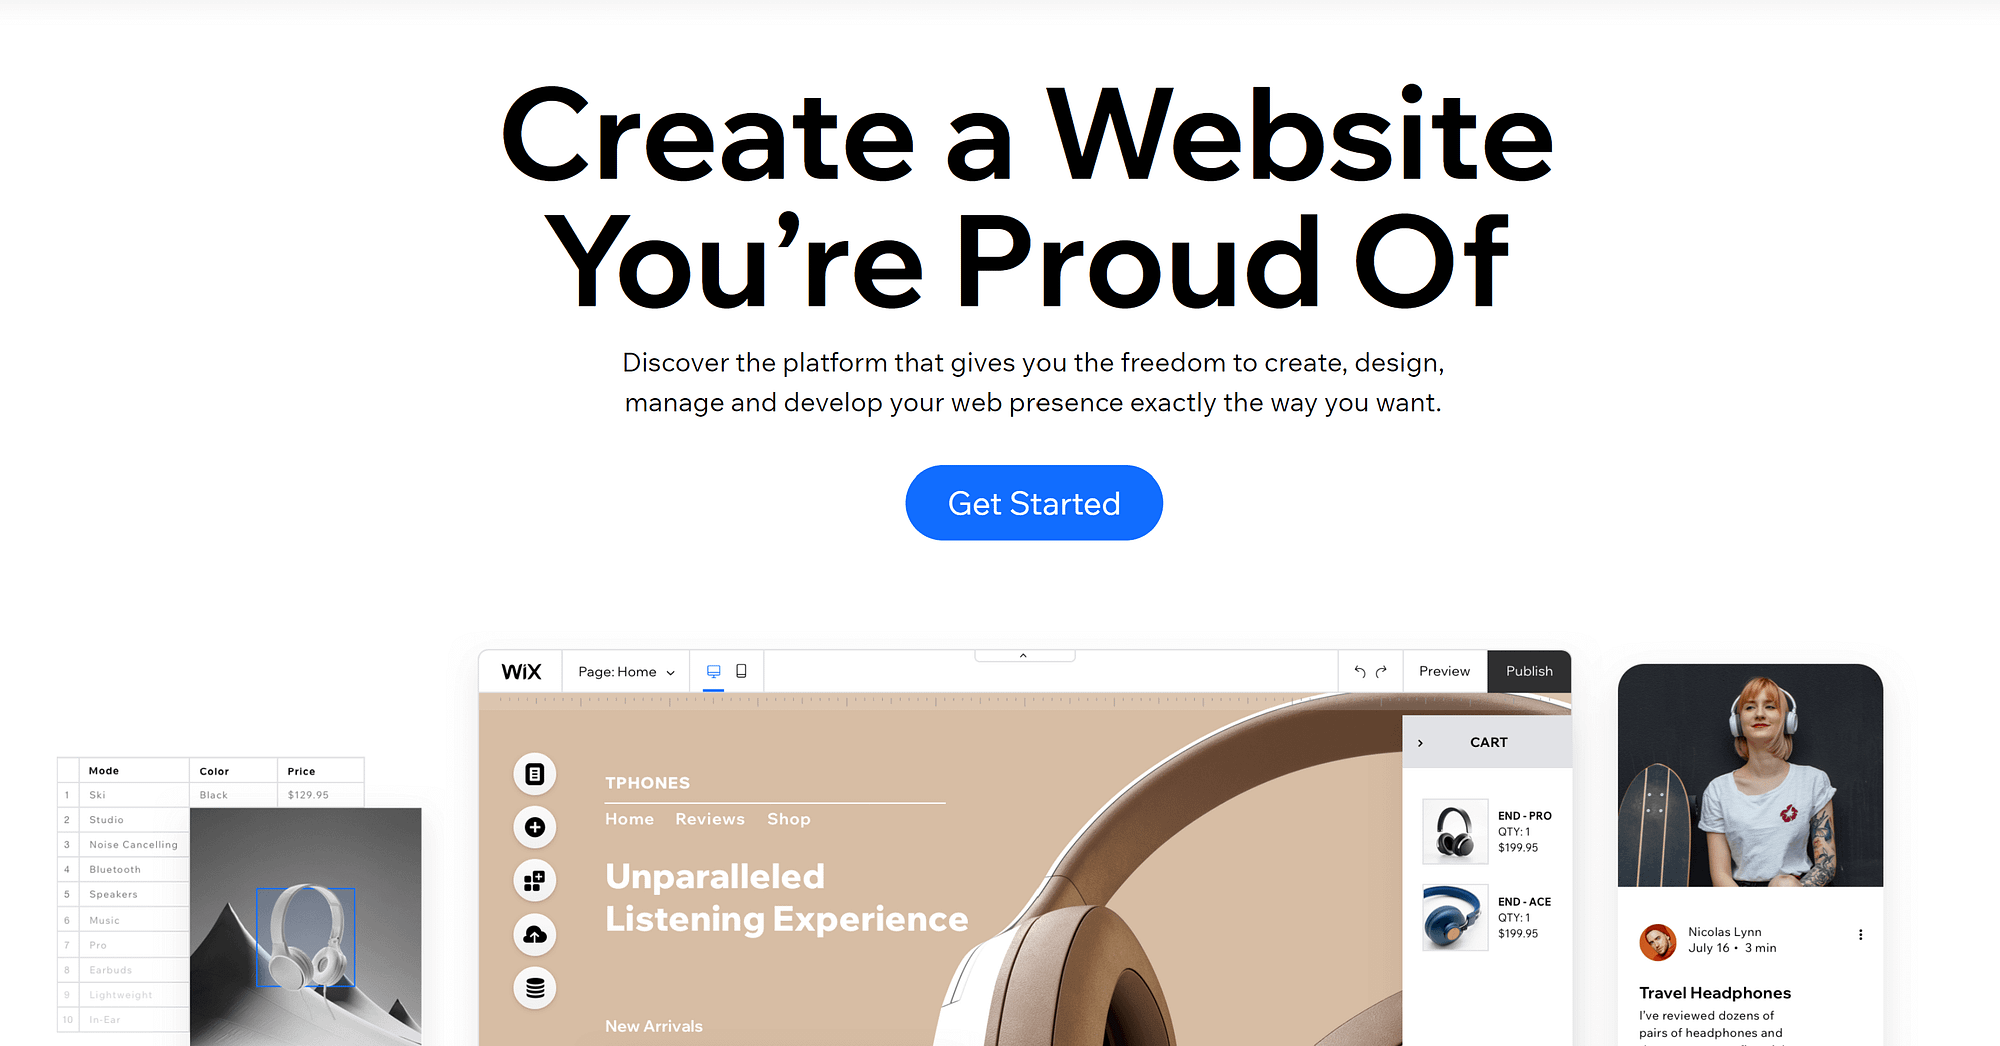 The homepage for one of the best website builders for artists, Wix.